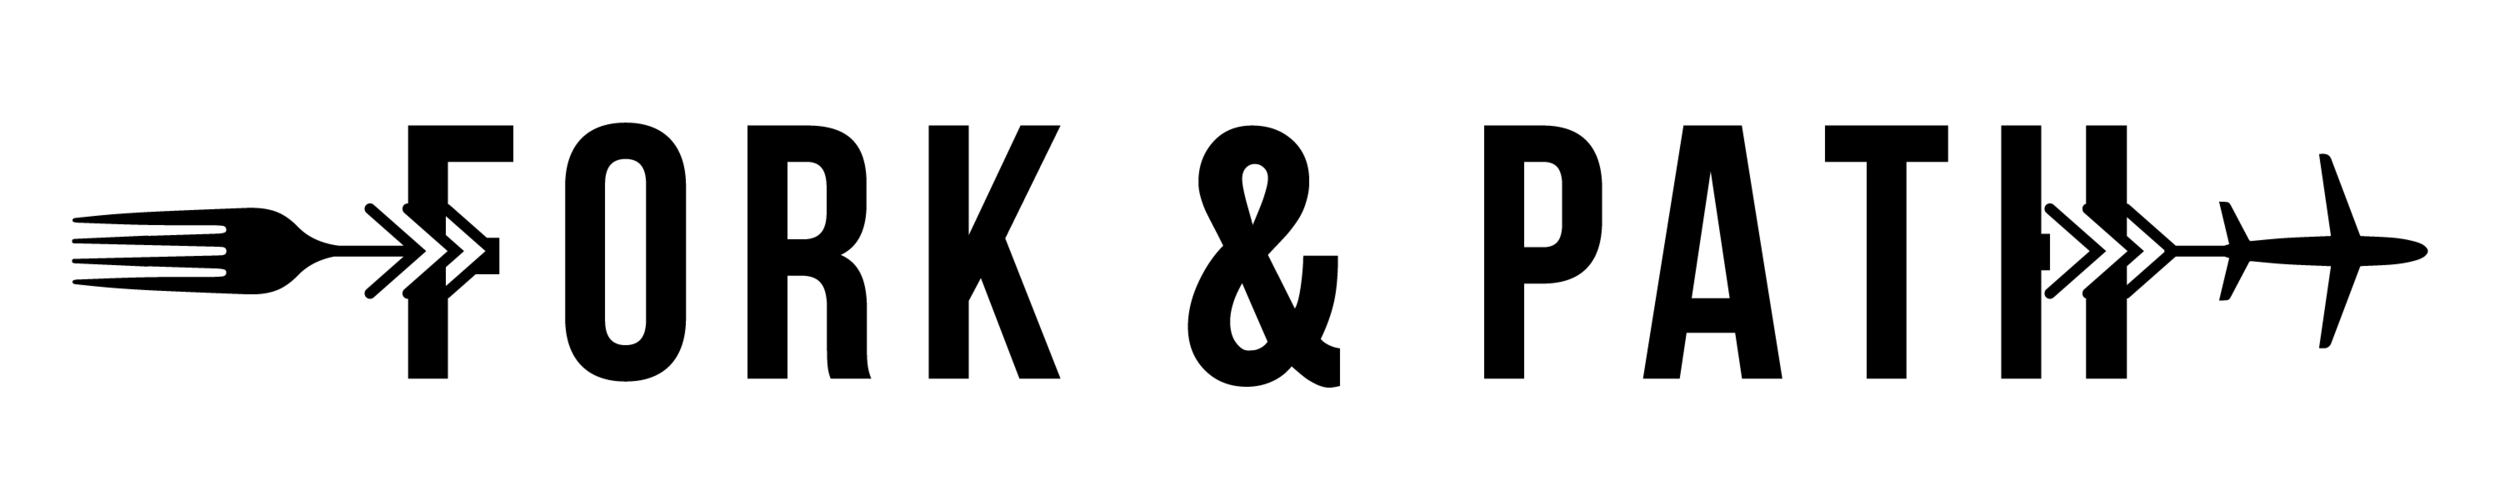 fork-path-clear_main-logo.png